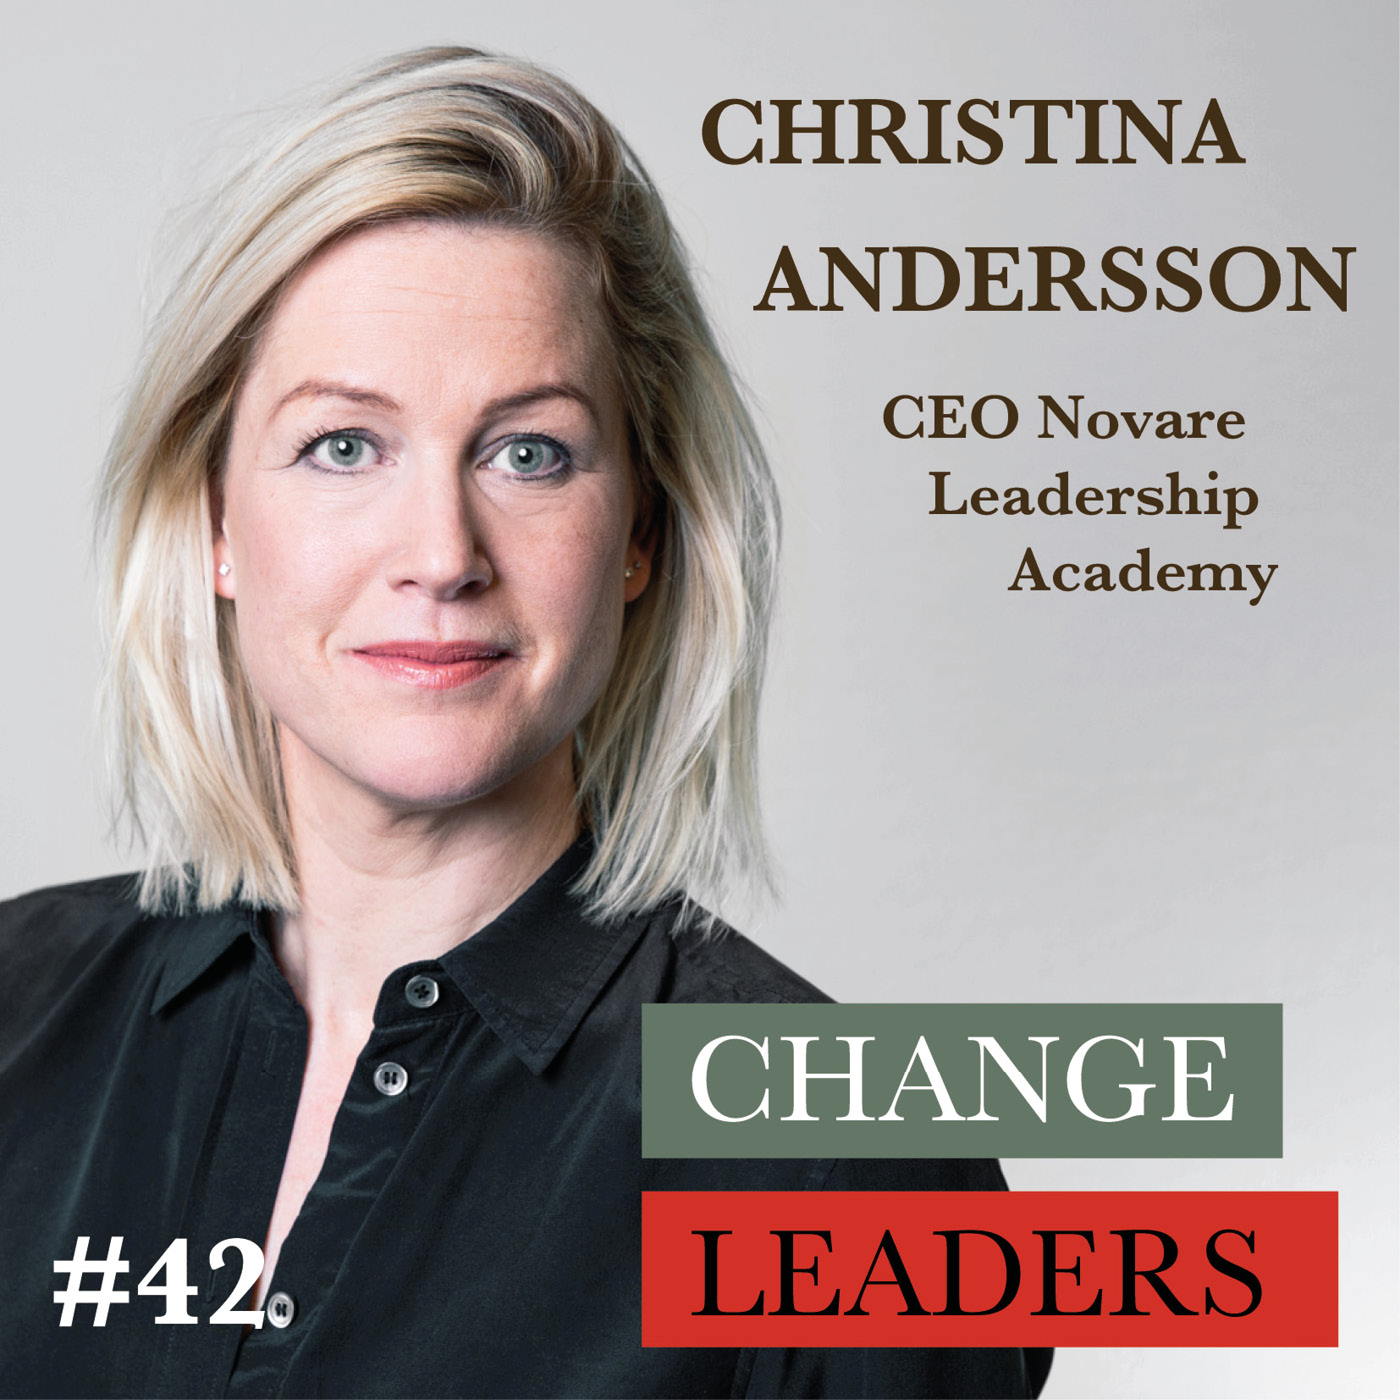 #42 Christina Andersson, CEO Novare Leadership Academy - 17 sustainability lessons for leaders